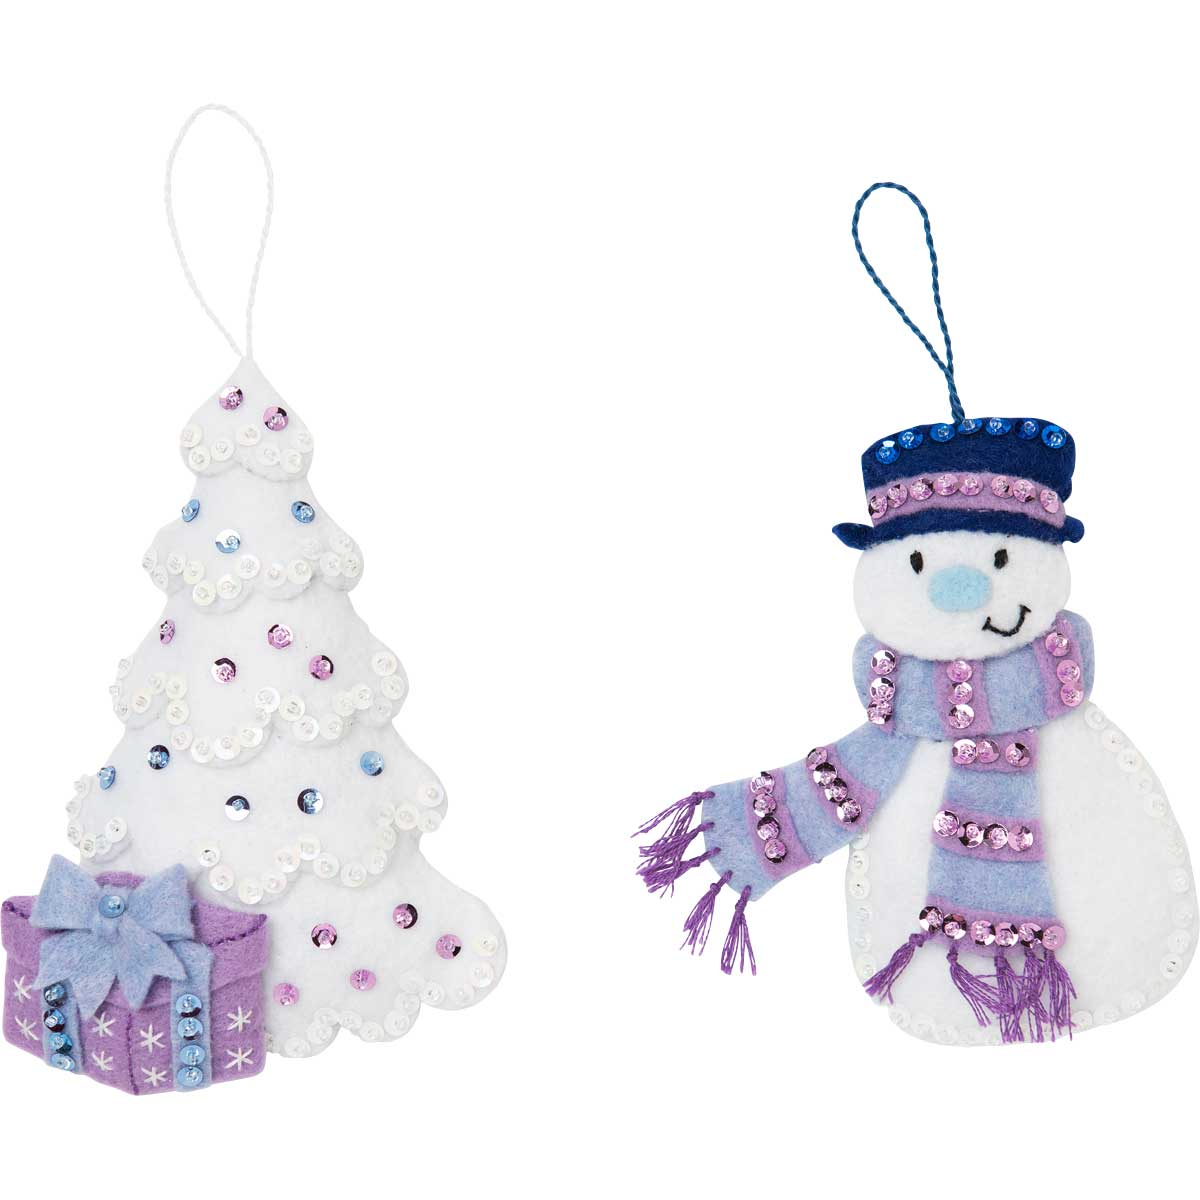 Bucilla ® Seasonal - Felt - Tree Trimmer Kits - Hallmark - Wintry Wonderland - 86889E